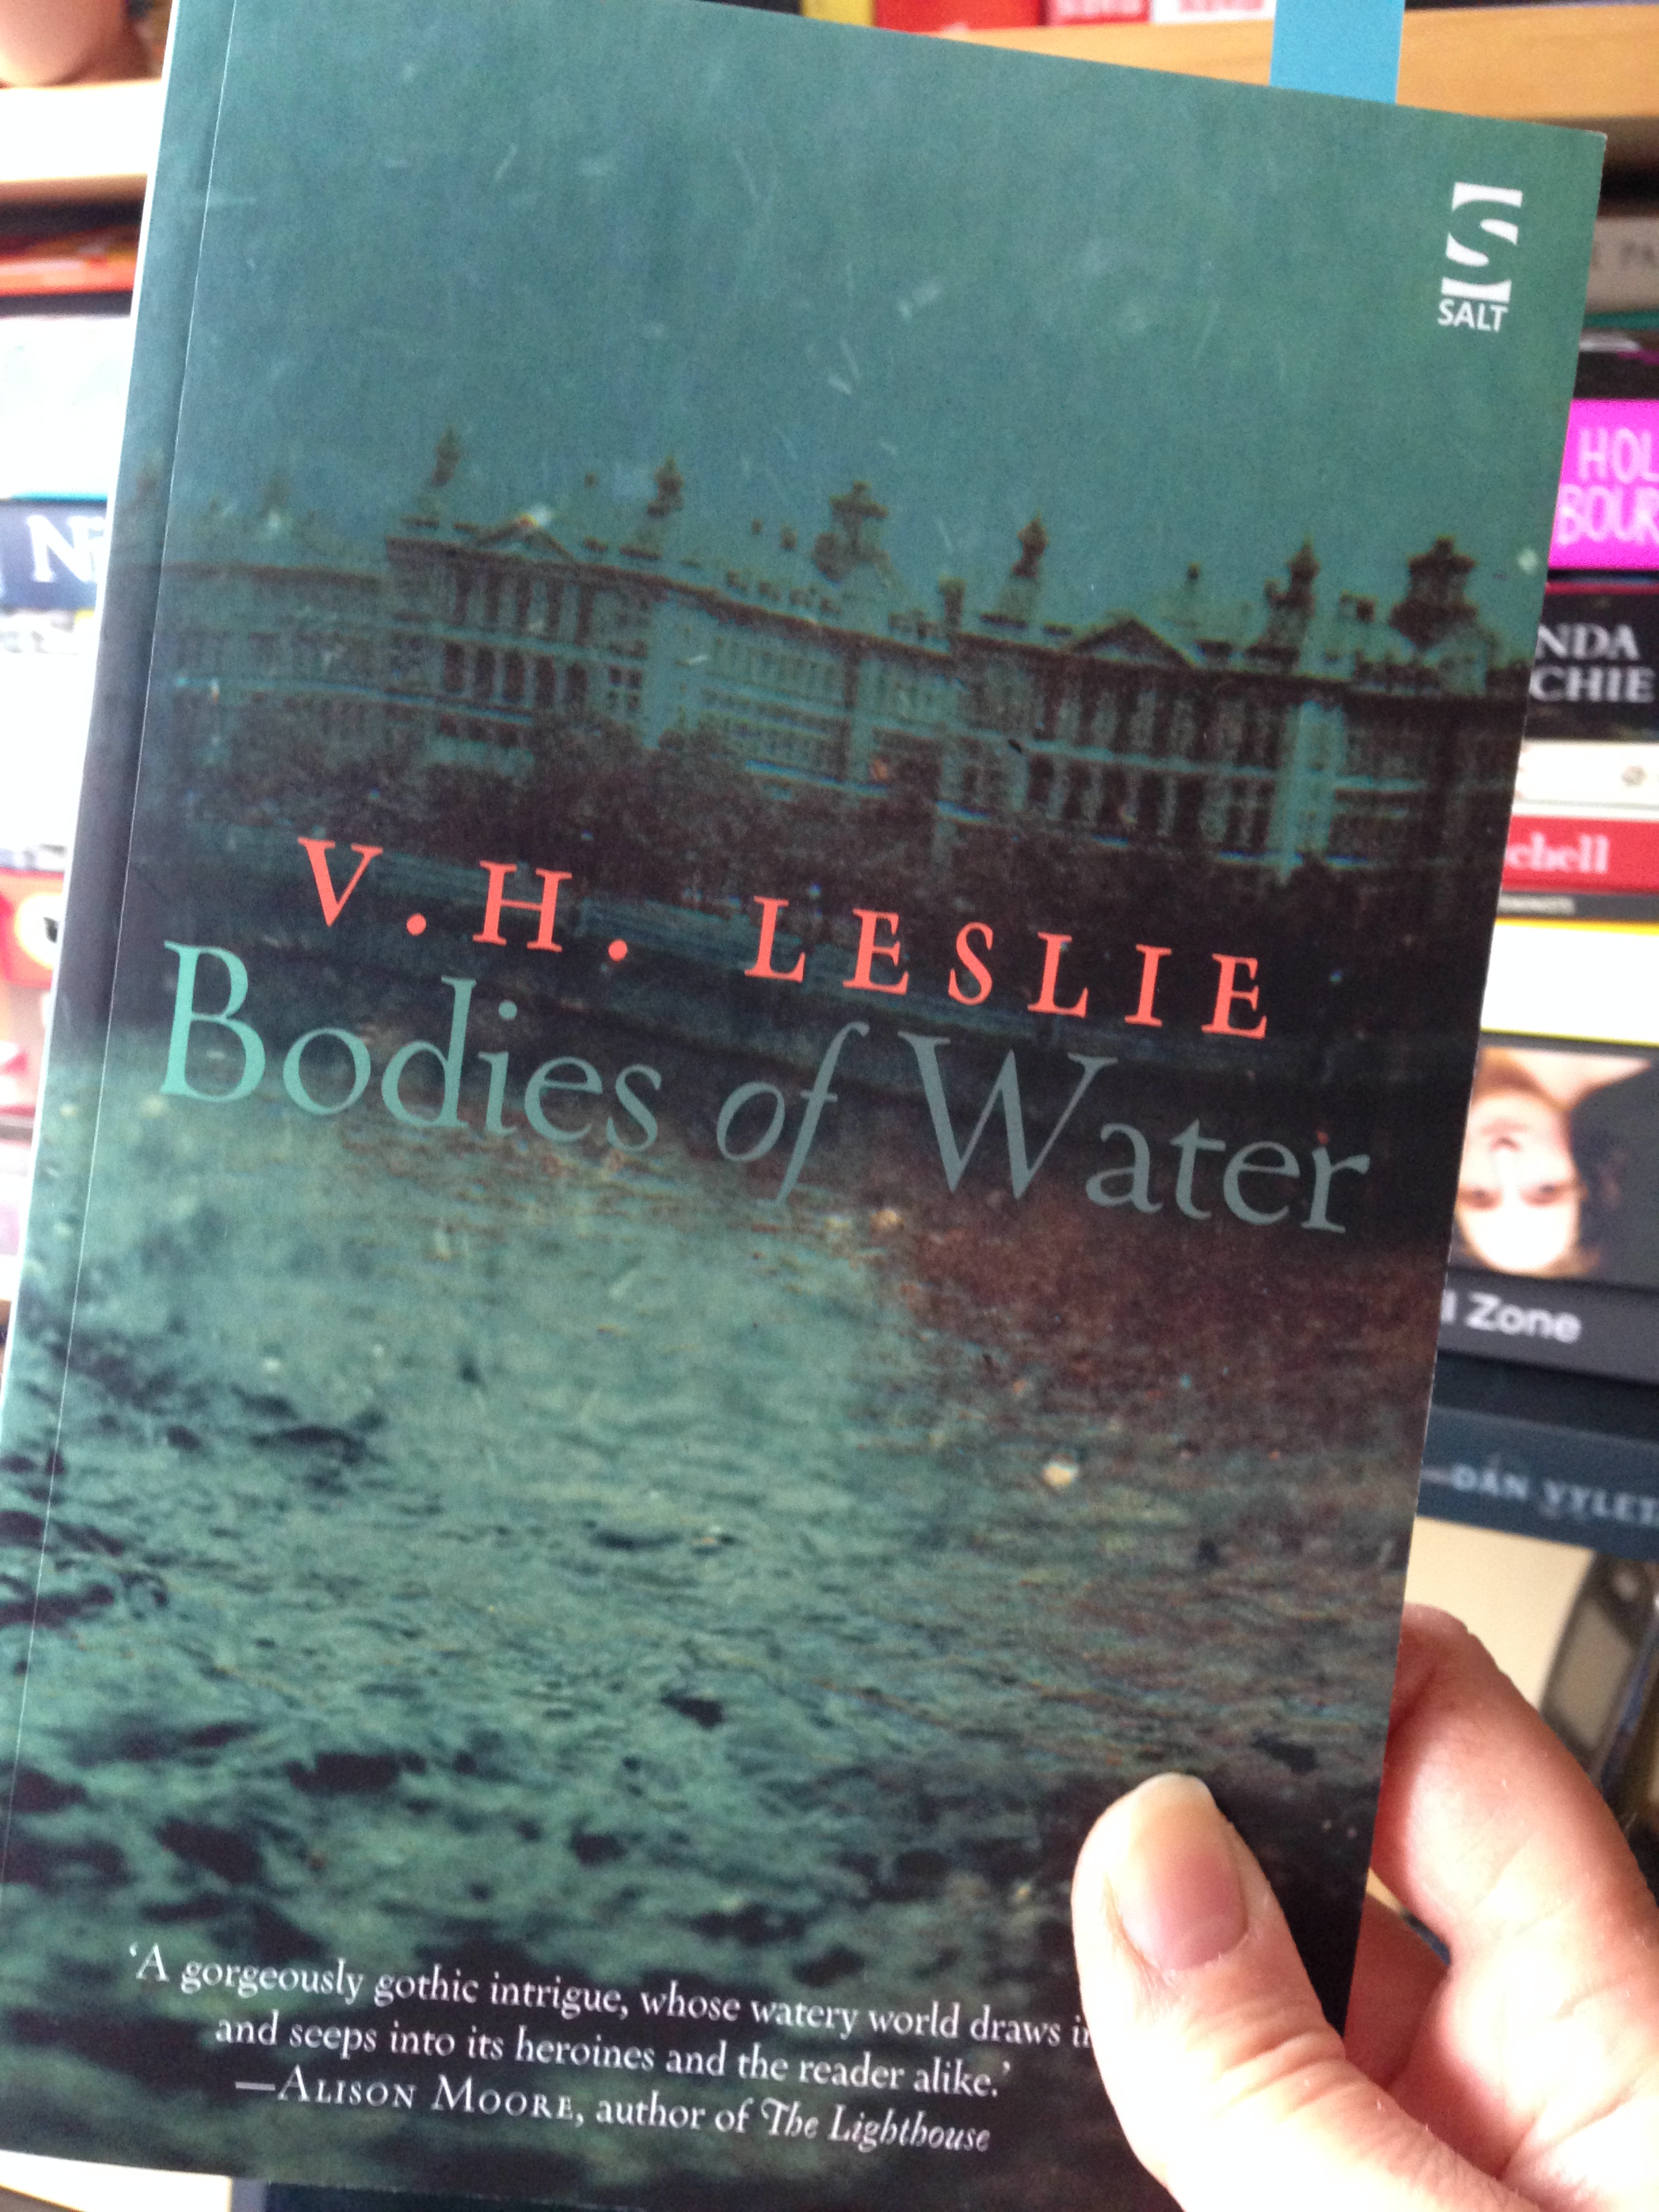 BOOK REVIEW – Bodies of Water by V.H. Leslie